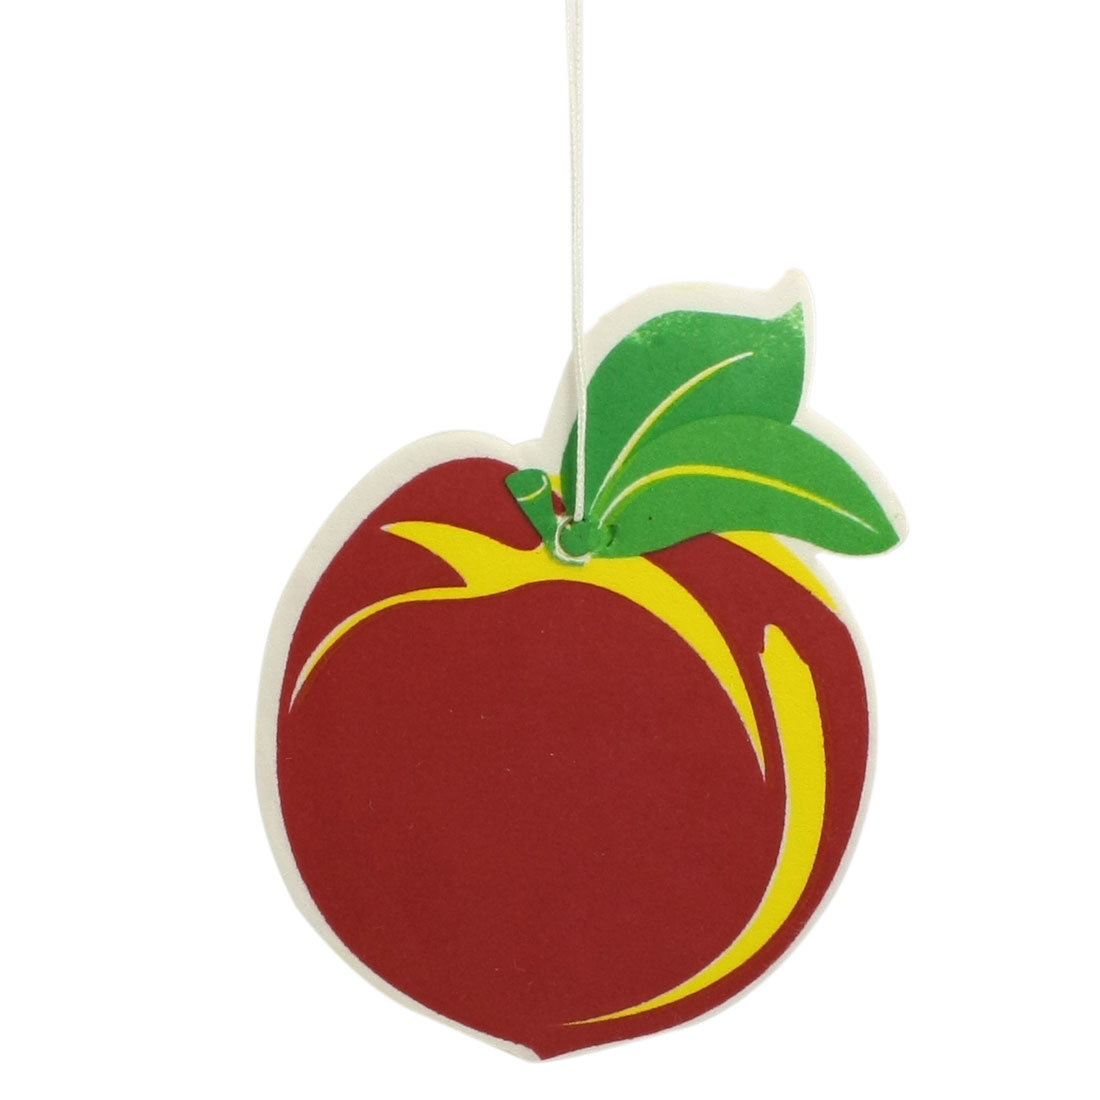 Paper Fruit Peach Vehicle Car Home Hanging Air Freshener Decoration